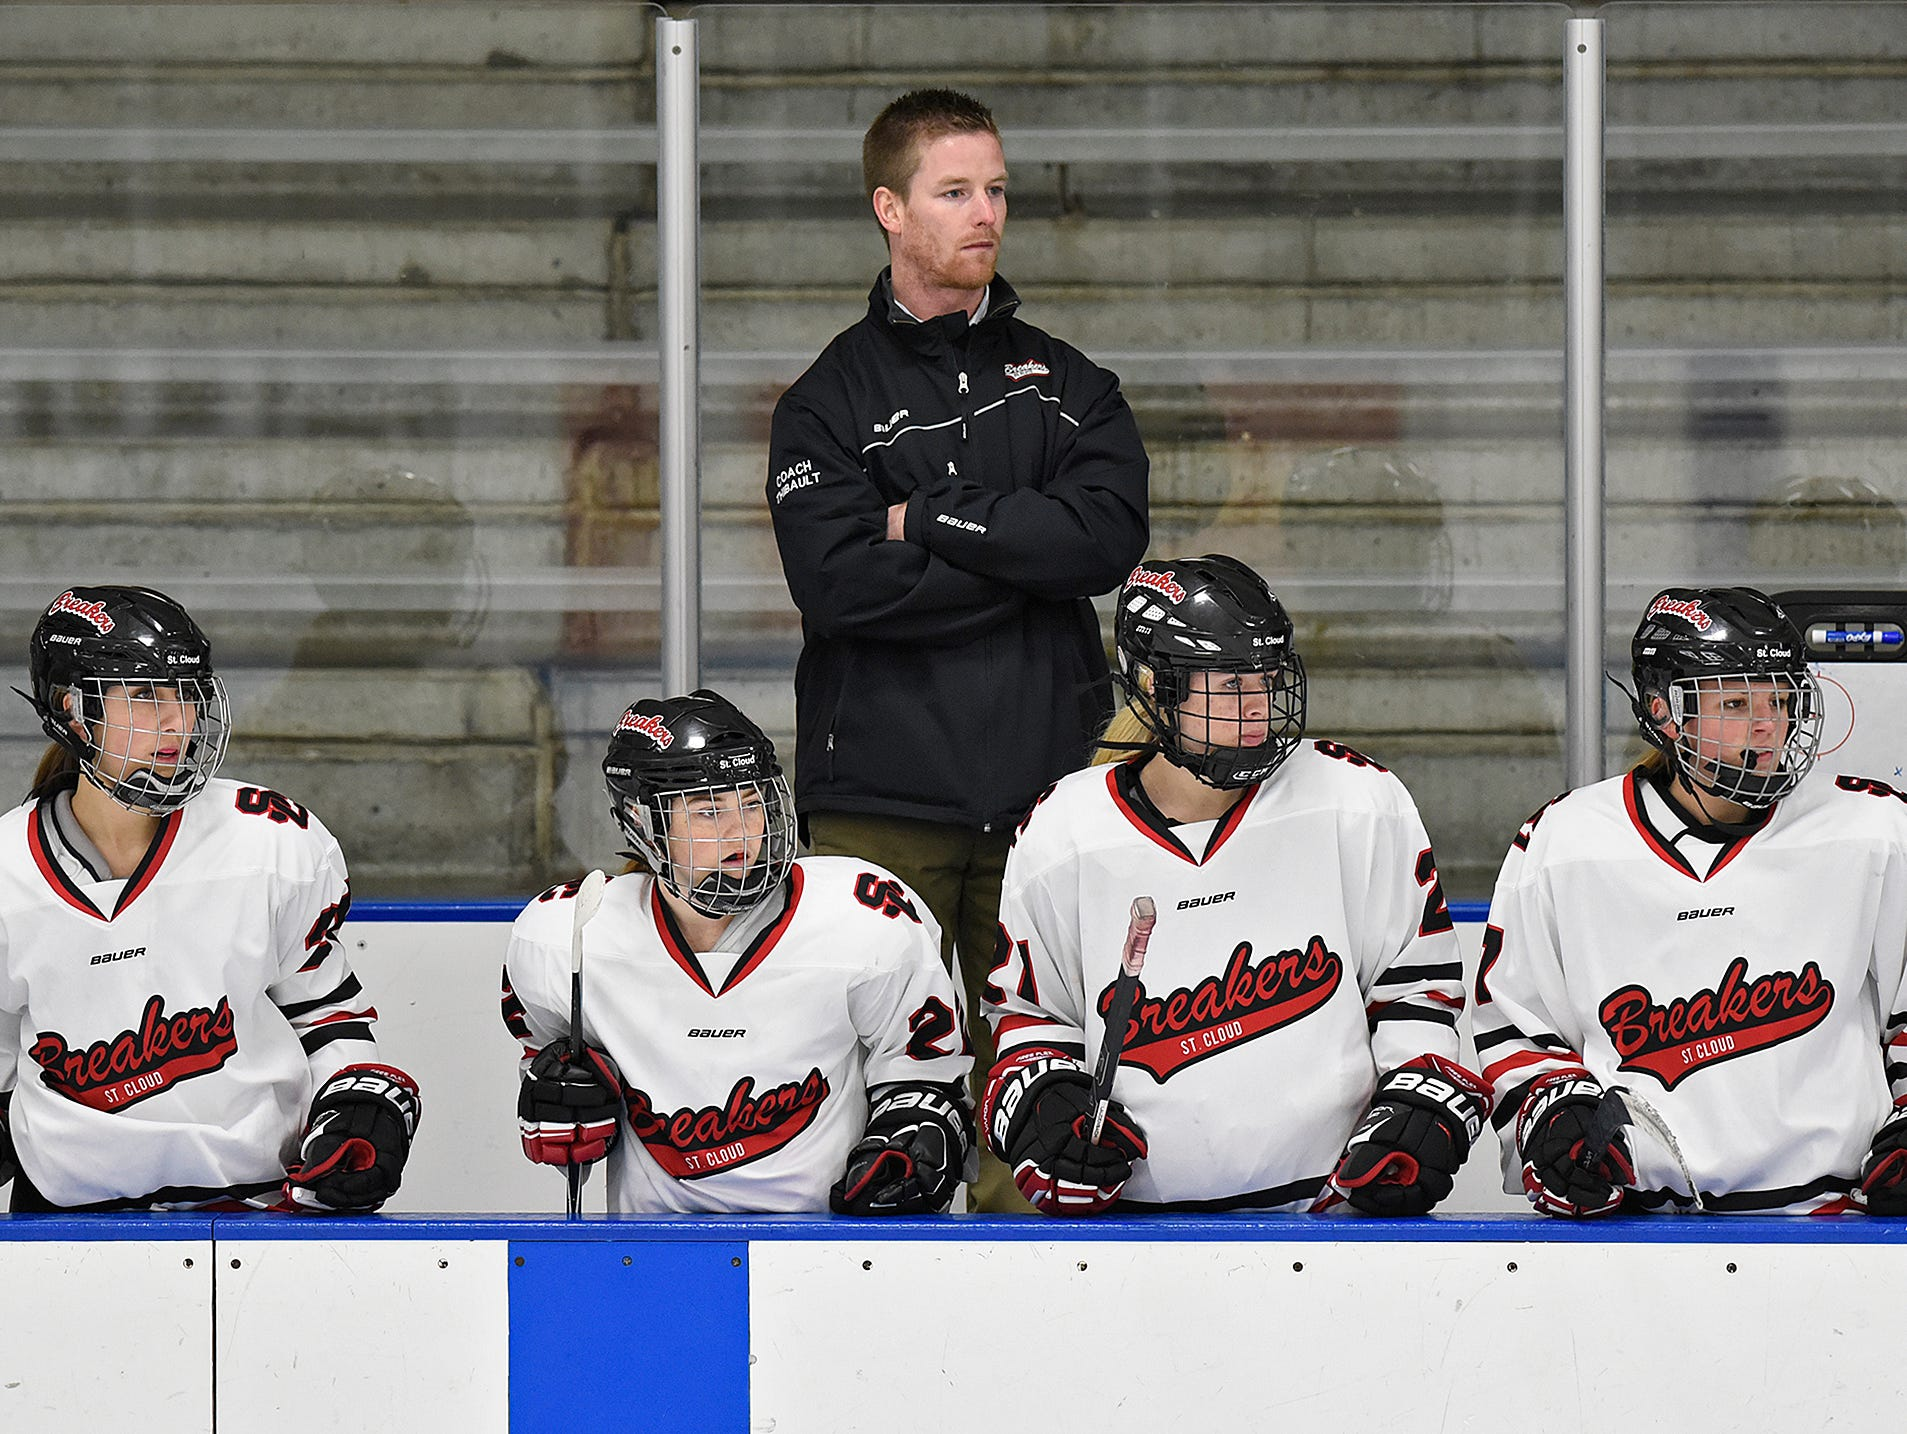 Nick Thibault watches his team from the bench during a game Thursday at the MAC in St. Cloud. Thibault is in his first season as the head coach for the St. Cloud Icebreakers.